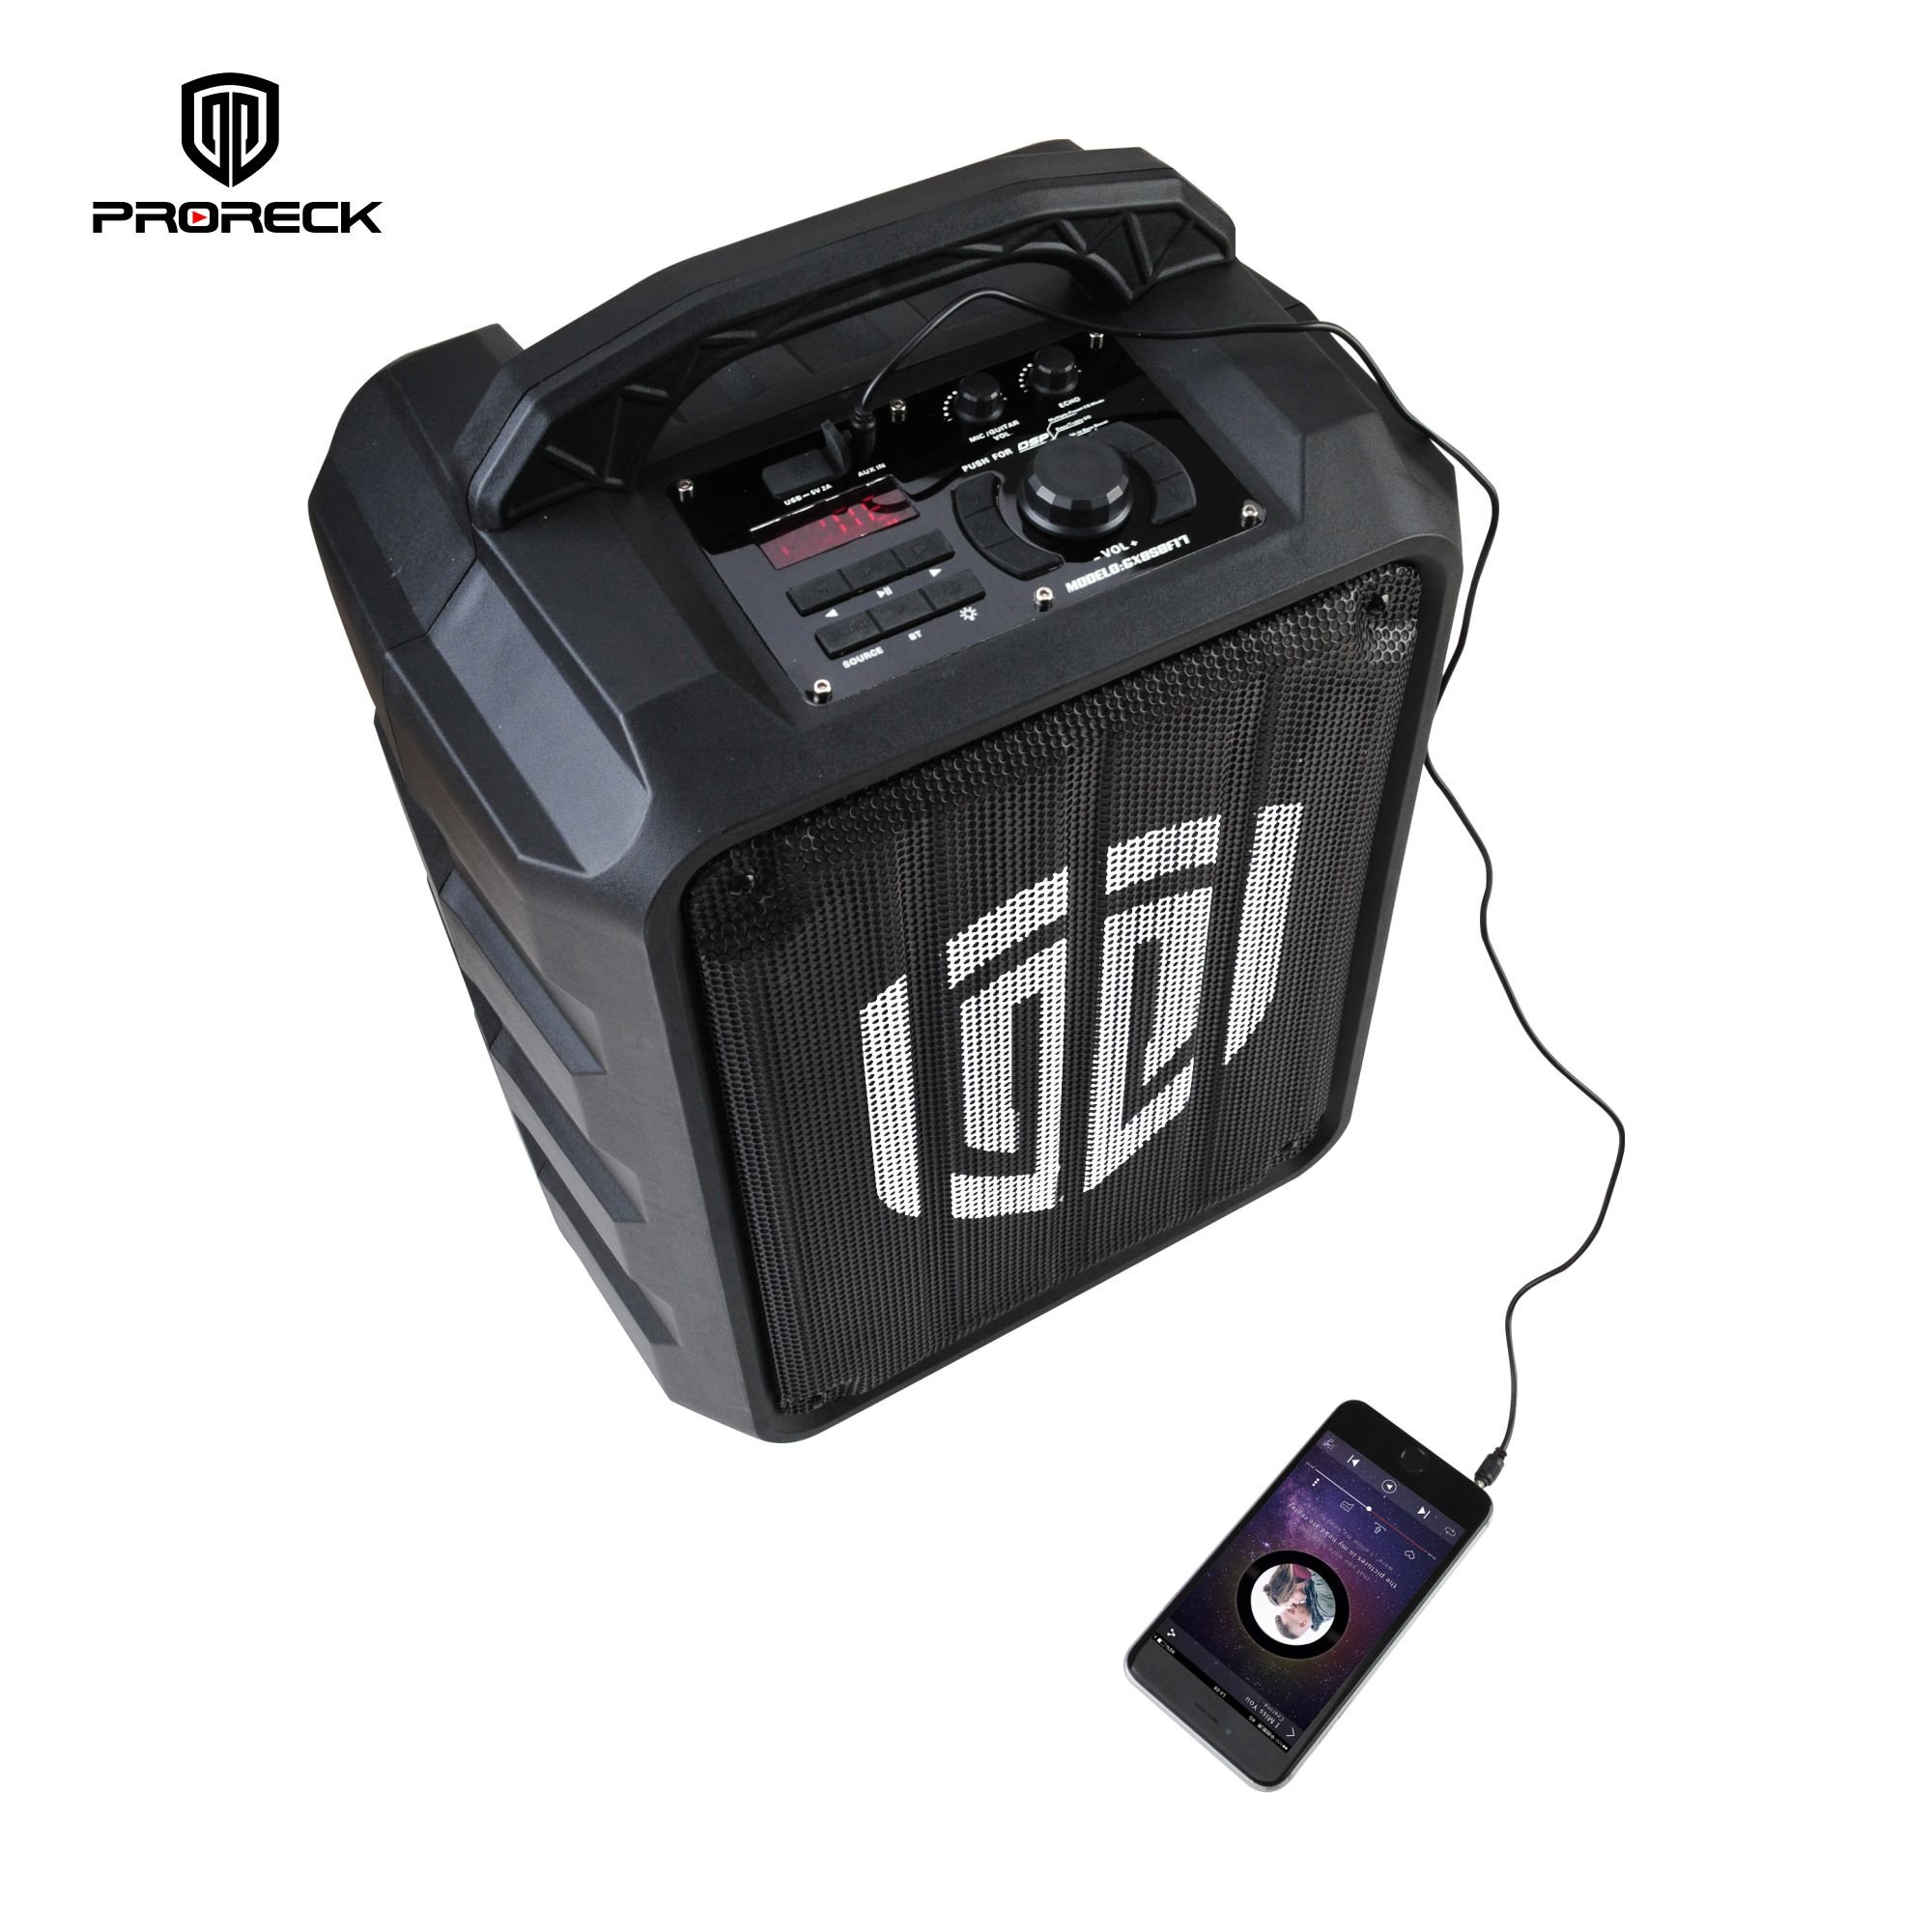 PRORECK FREEDOM 8 Portable 8-Inch 2-Way Rechargeable Powered Dj/PA Speaker System with Wired Microphone LED Lights Function Bluetooth/USB Drive / FM Radio/Remote Control